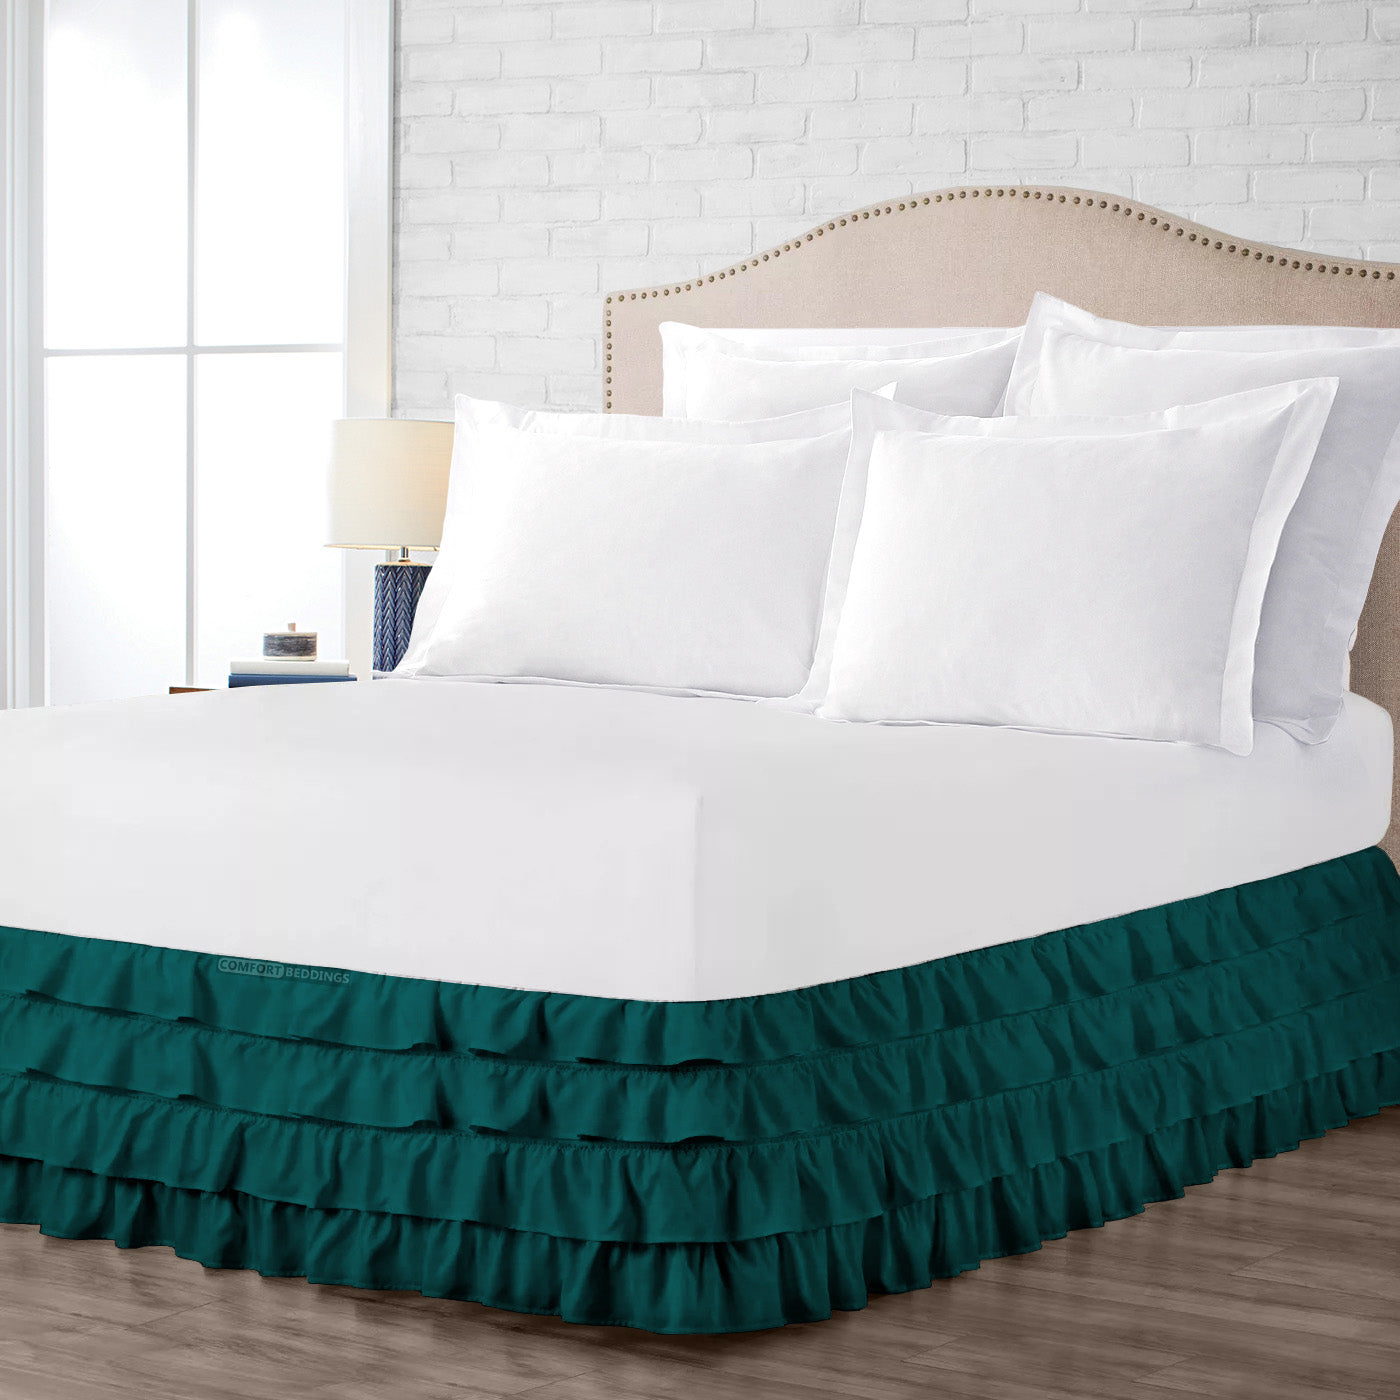 Egyptian cotton made Teal waterfall ruffled bed skirt